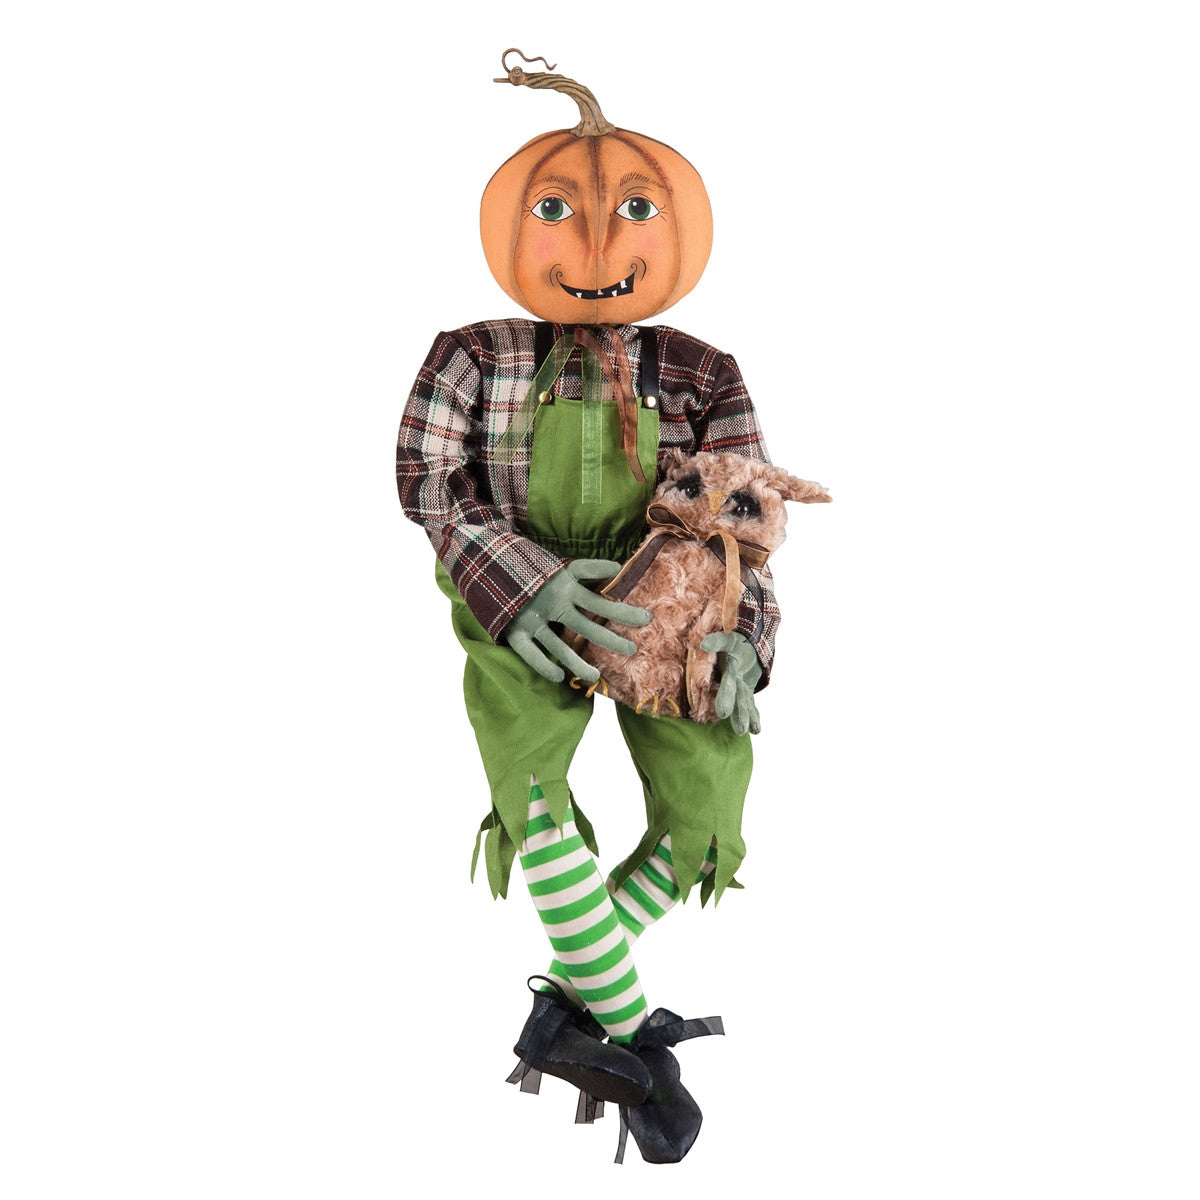 Joe Spencer Percival Pumpkin Guy with Owl Doll